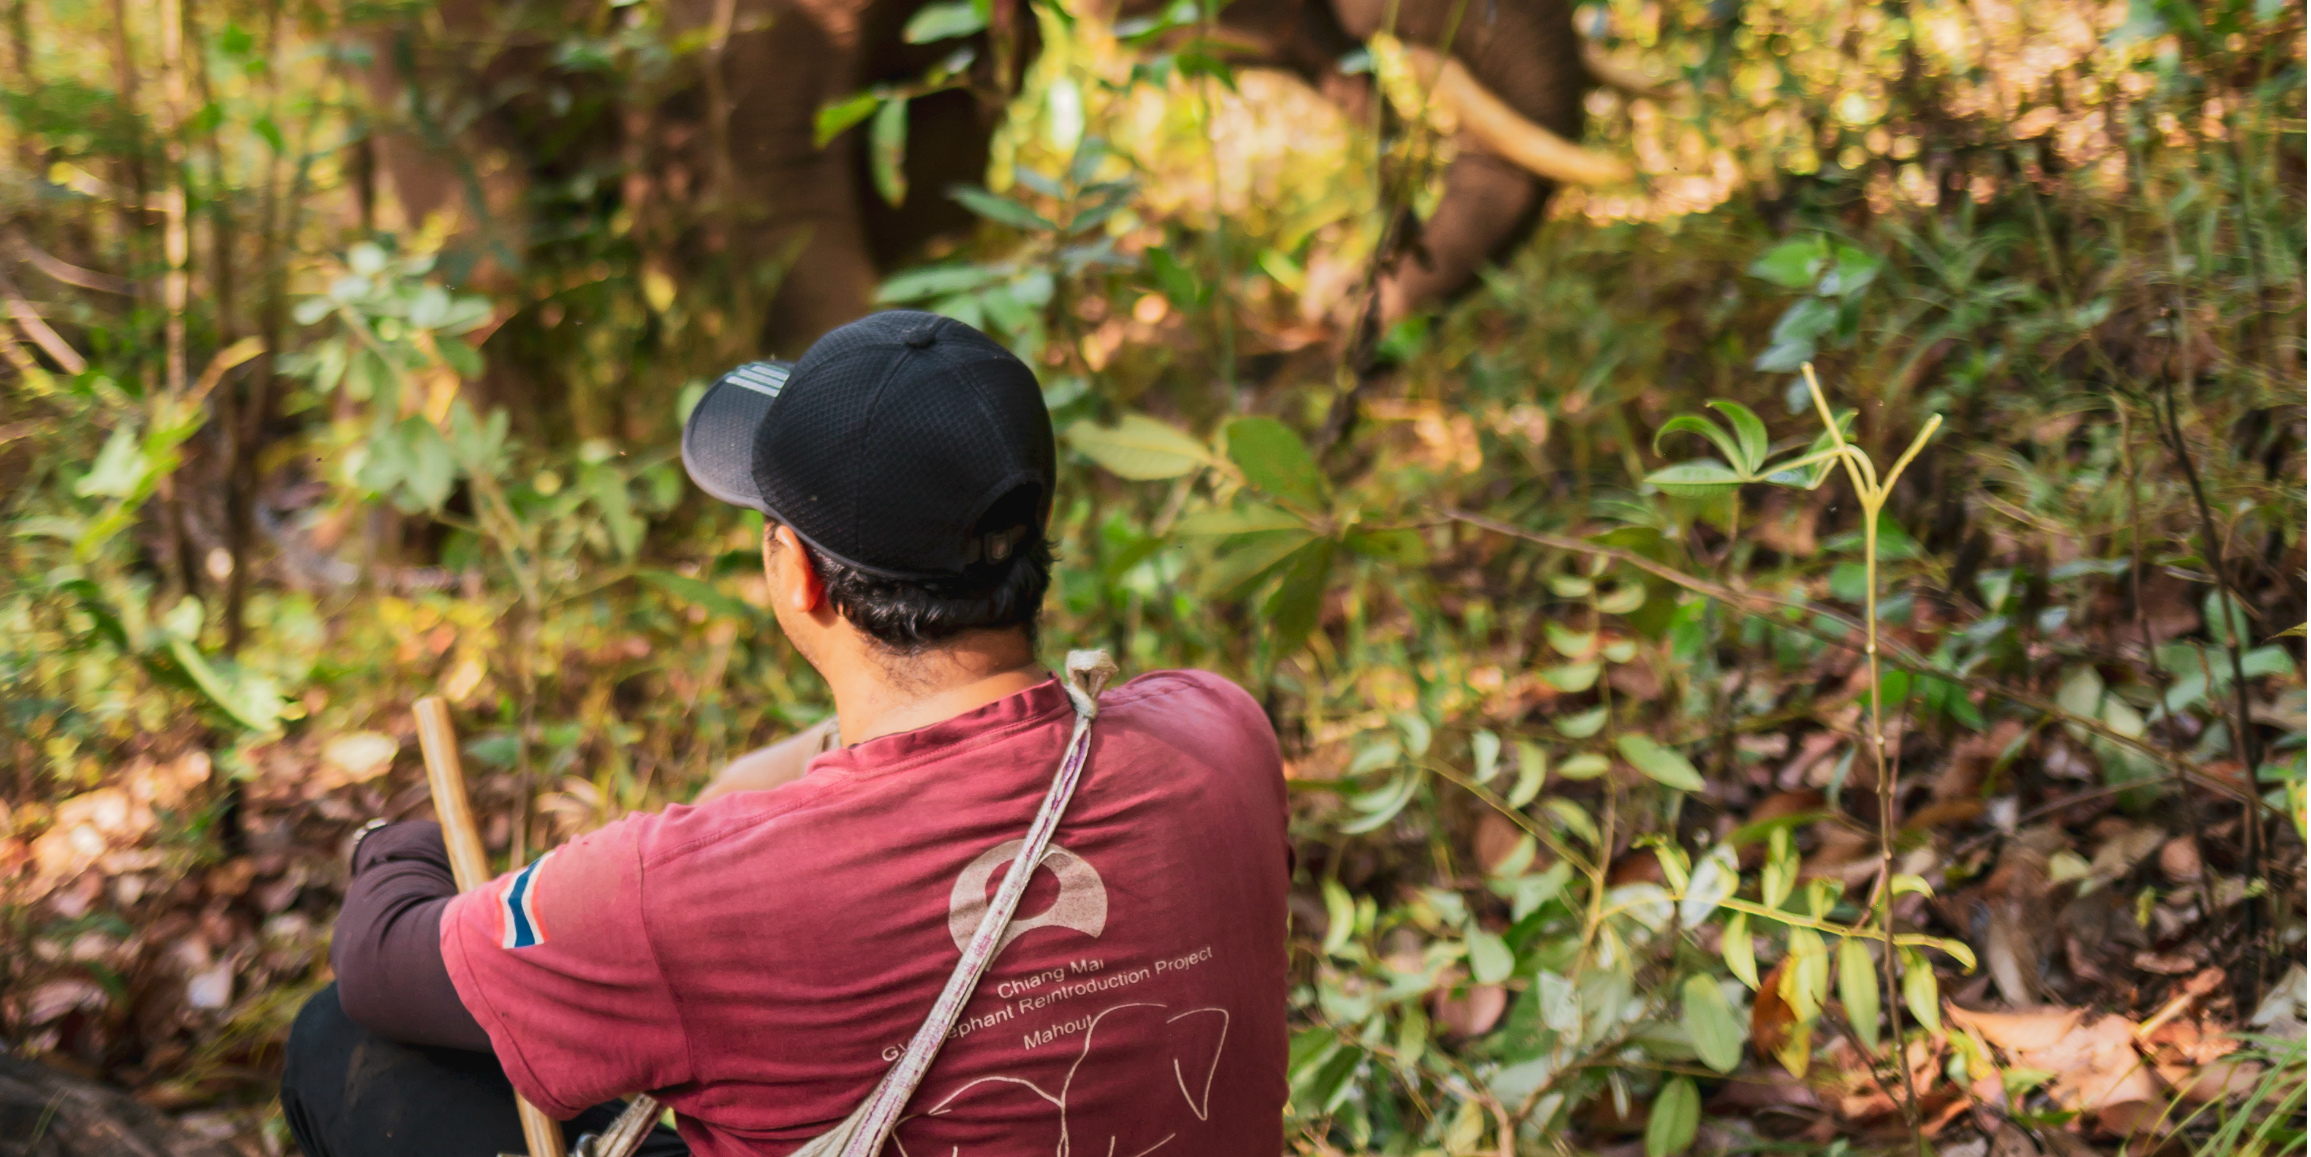 A traditional elephant keeper observes his elephant in the hills of Chiang Mai, as part of a volunteer in Thailand with elephants program.